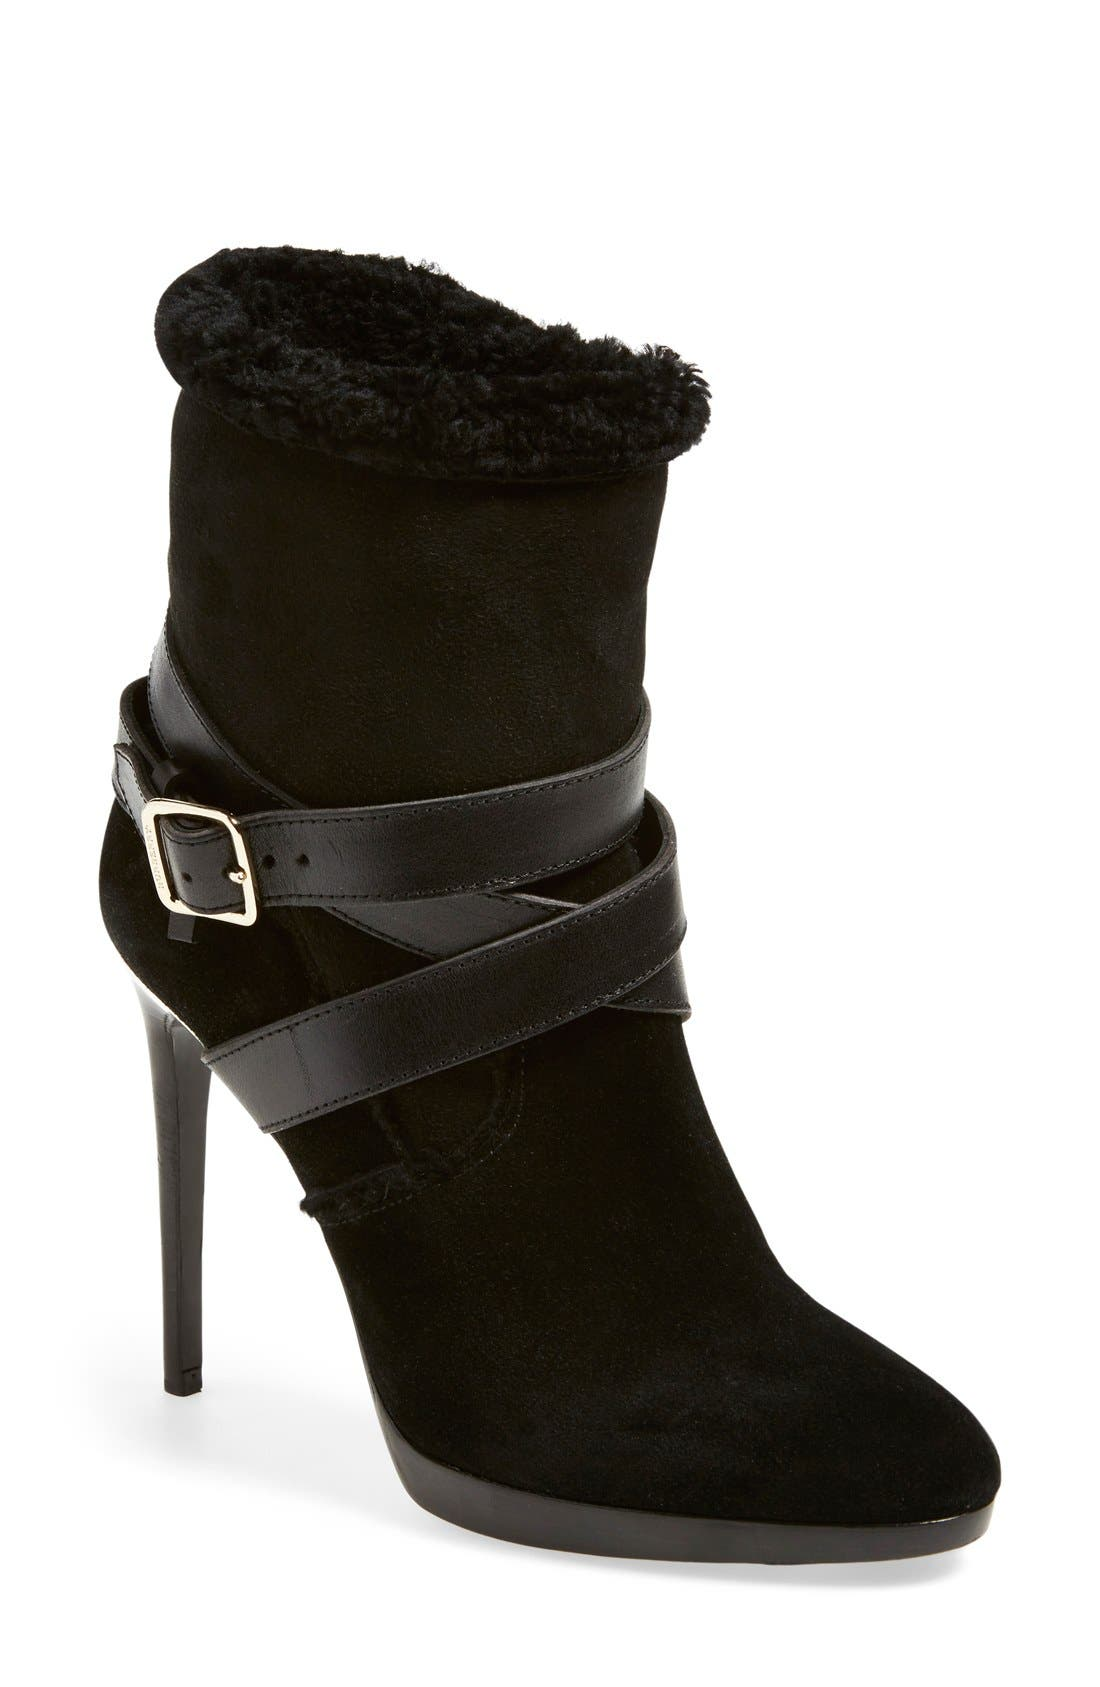 Alternate Image 1 Selected - Burberry 'Cadey' Almond Toe Boot (Women)